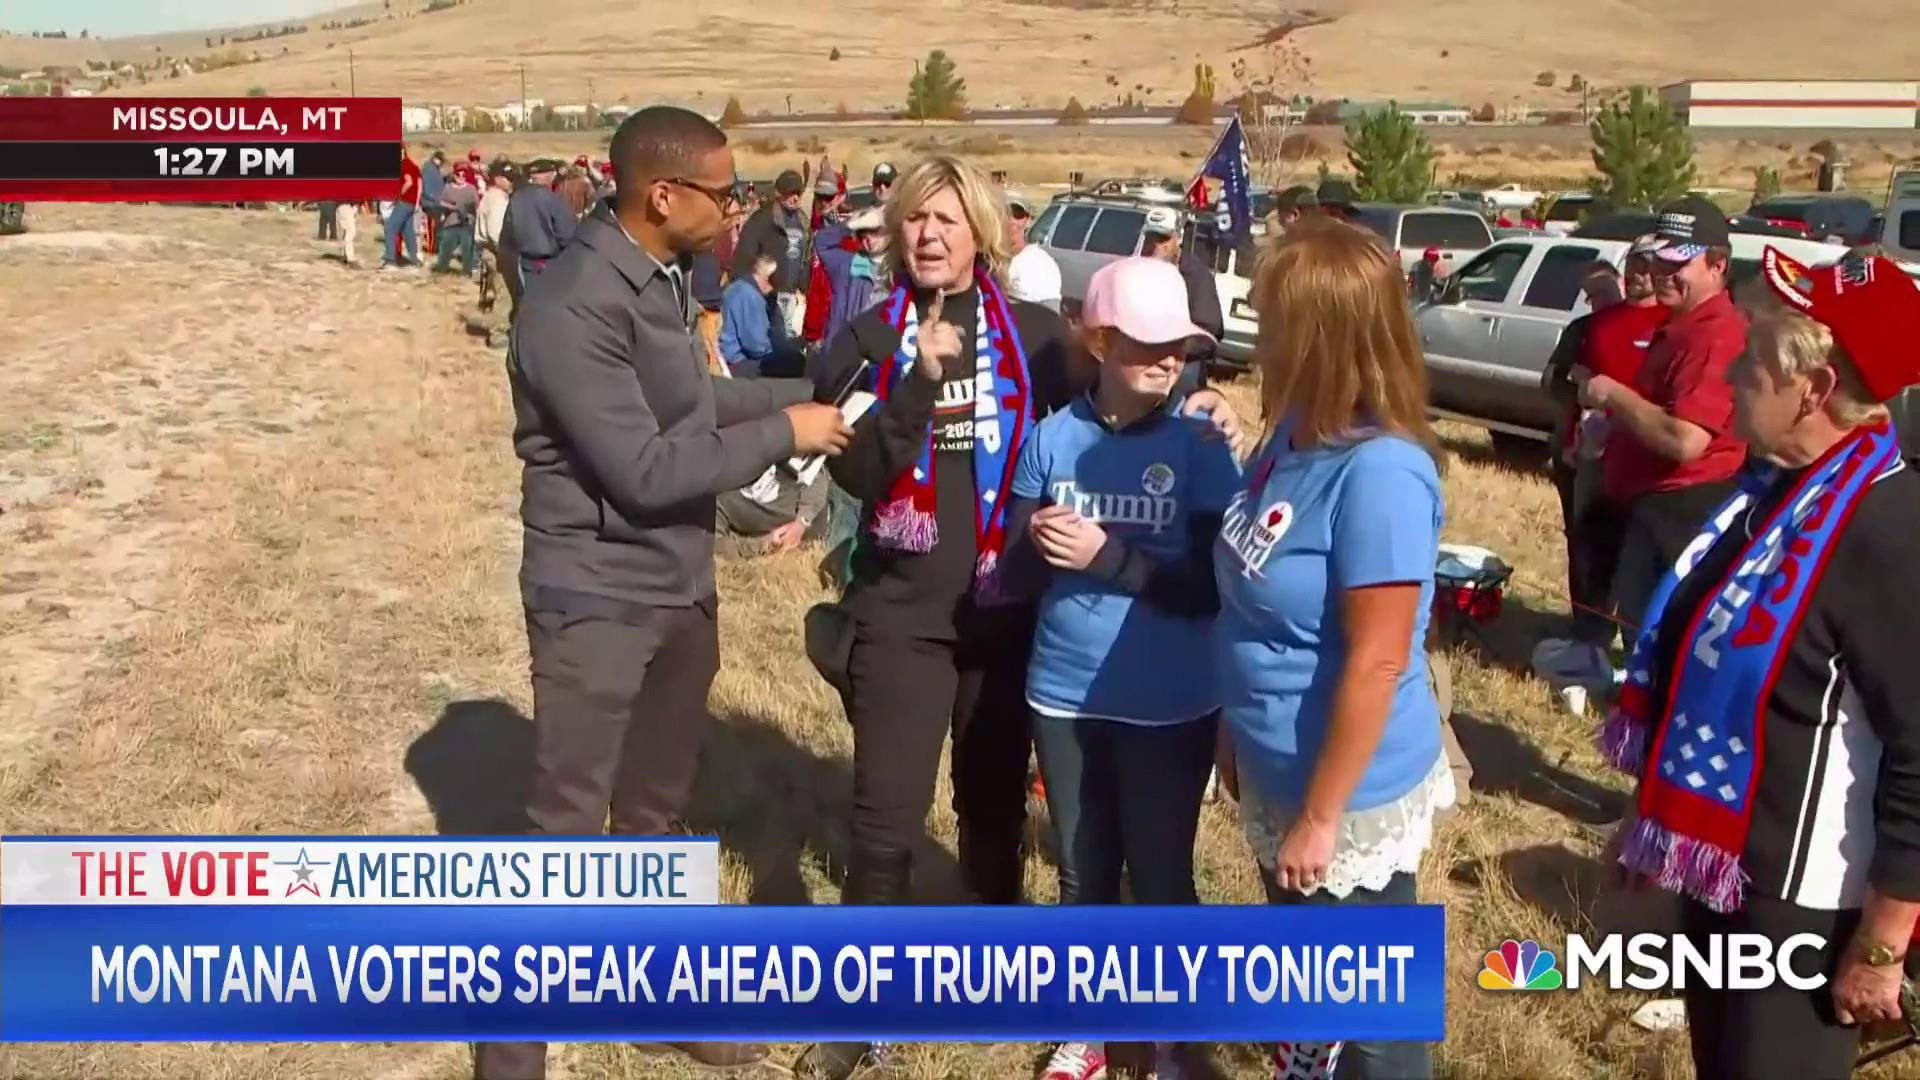 Fired up female Trump supporters ahead of MT rally